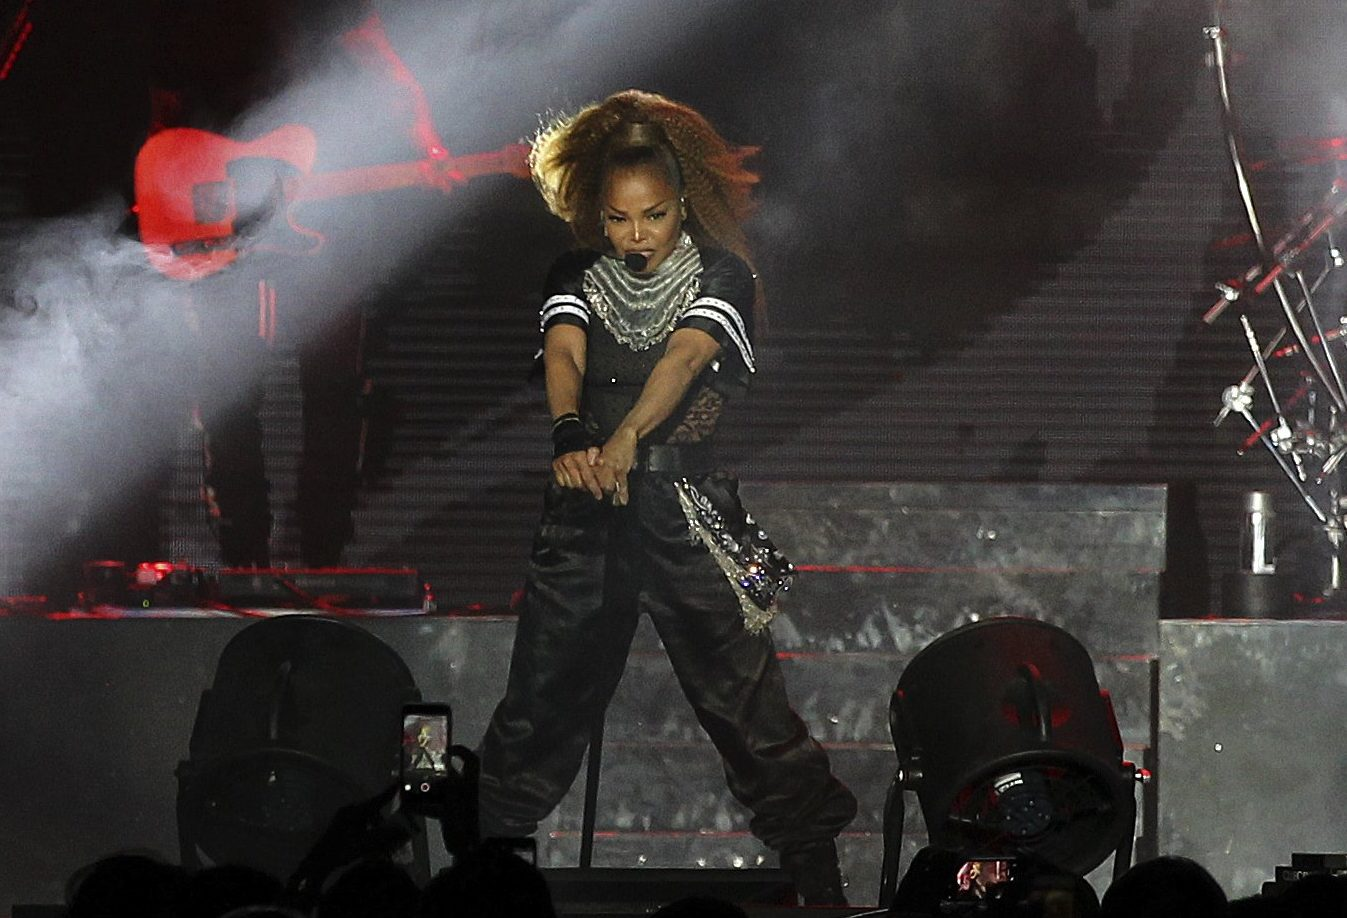 Janet Jackson puts aside grief over dad who died of cancer for crowd pleasing gig